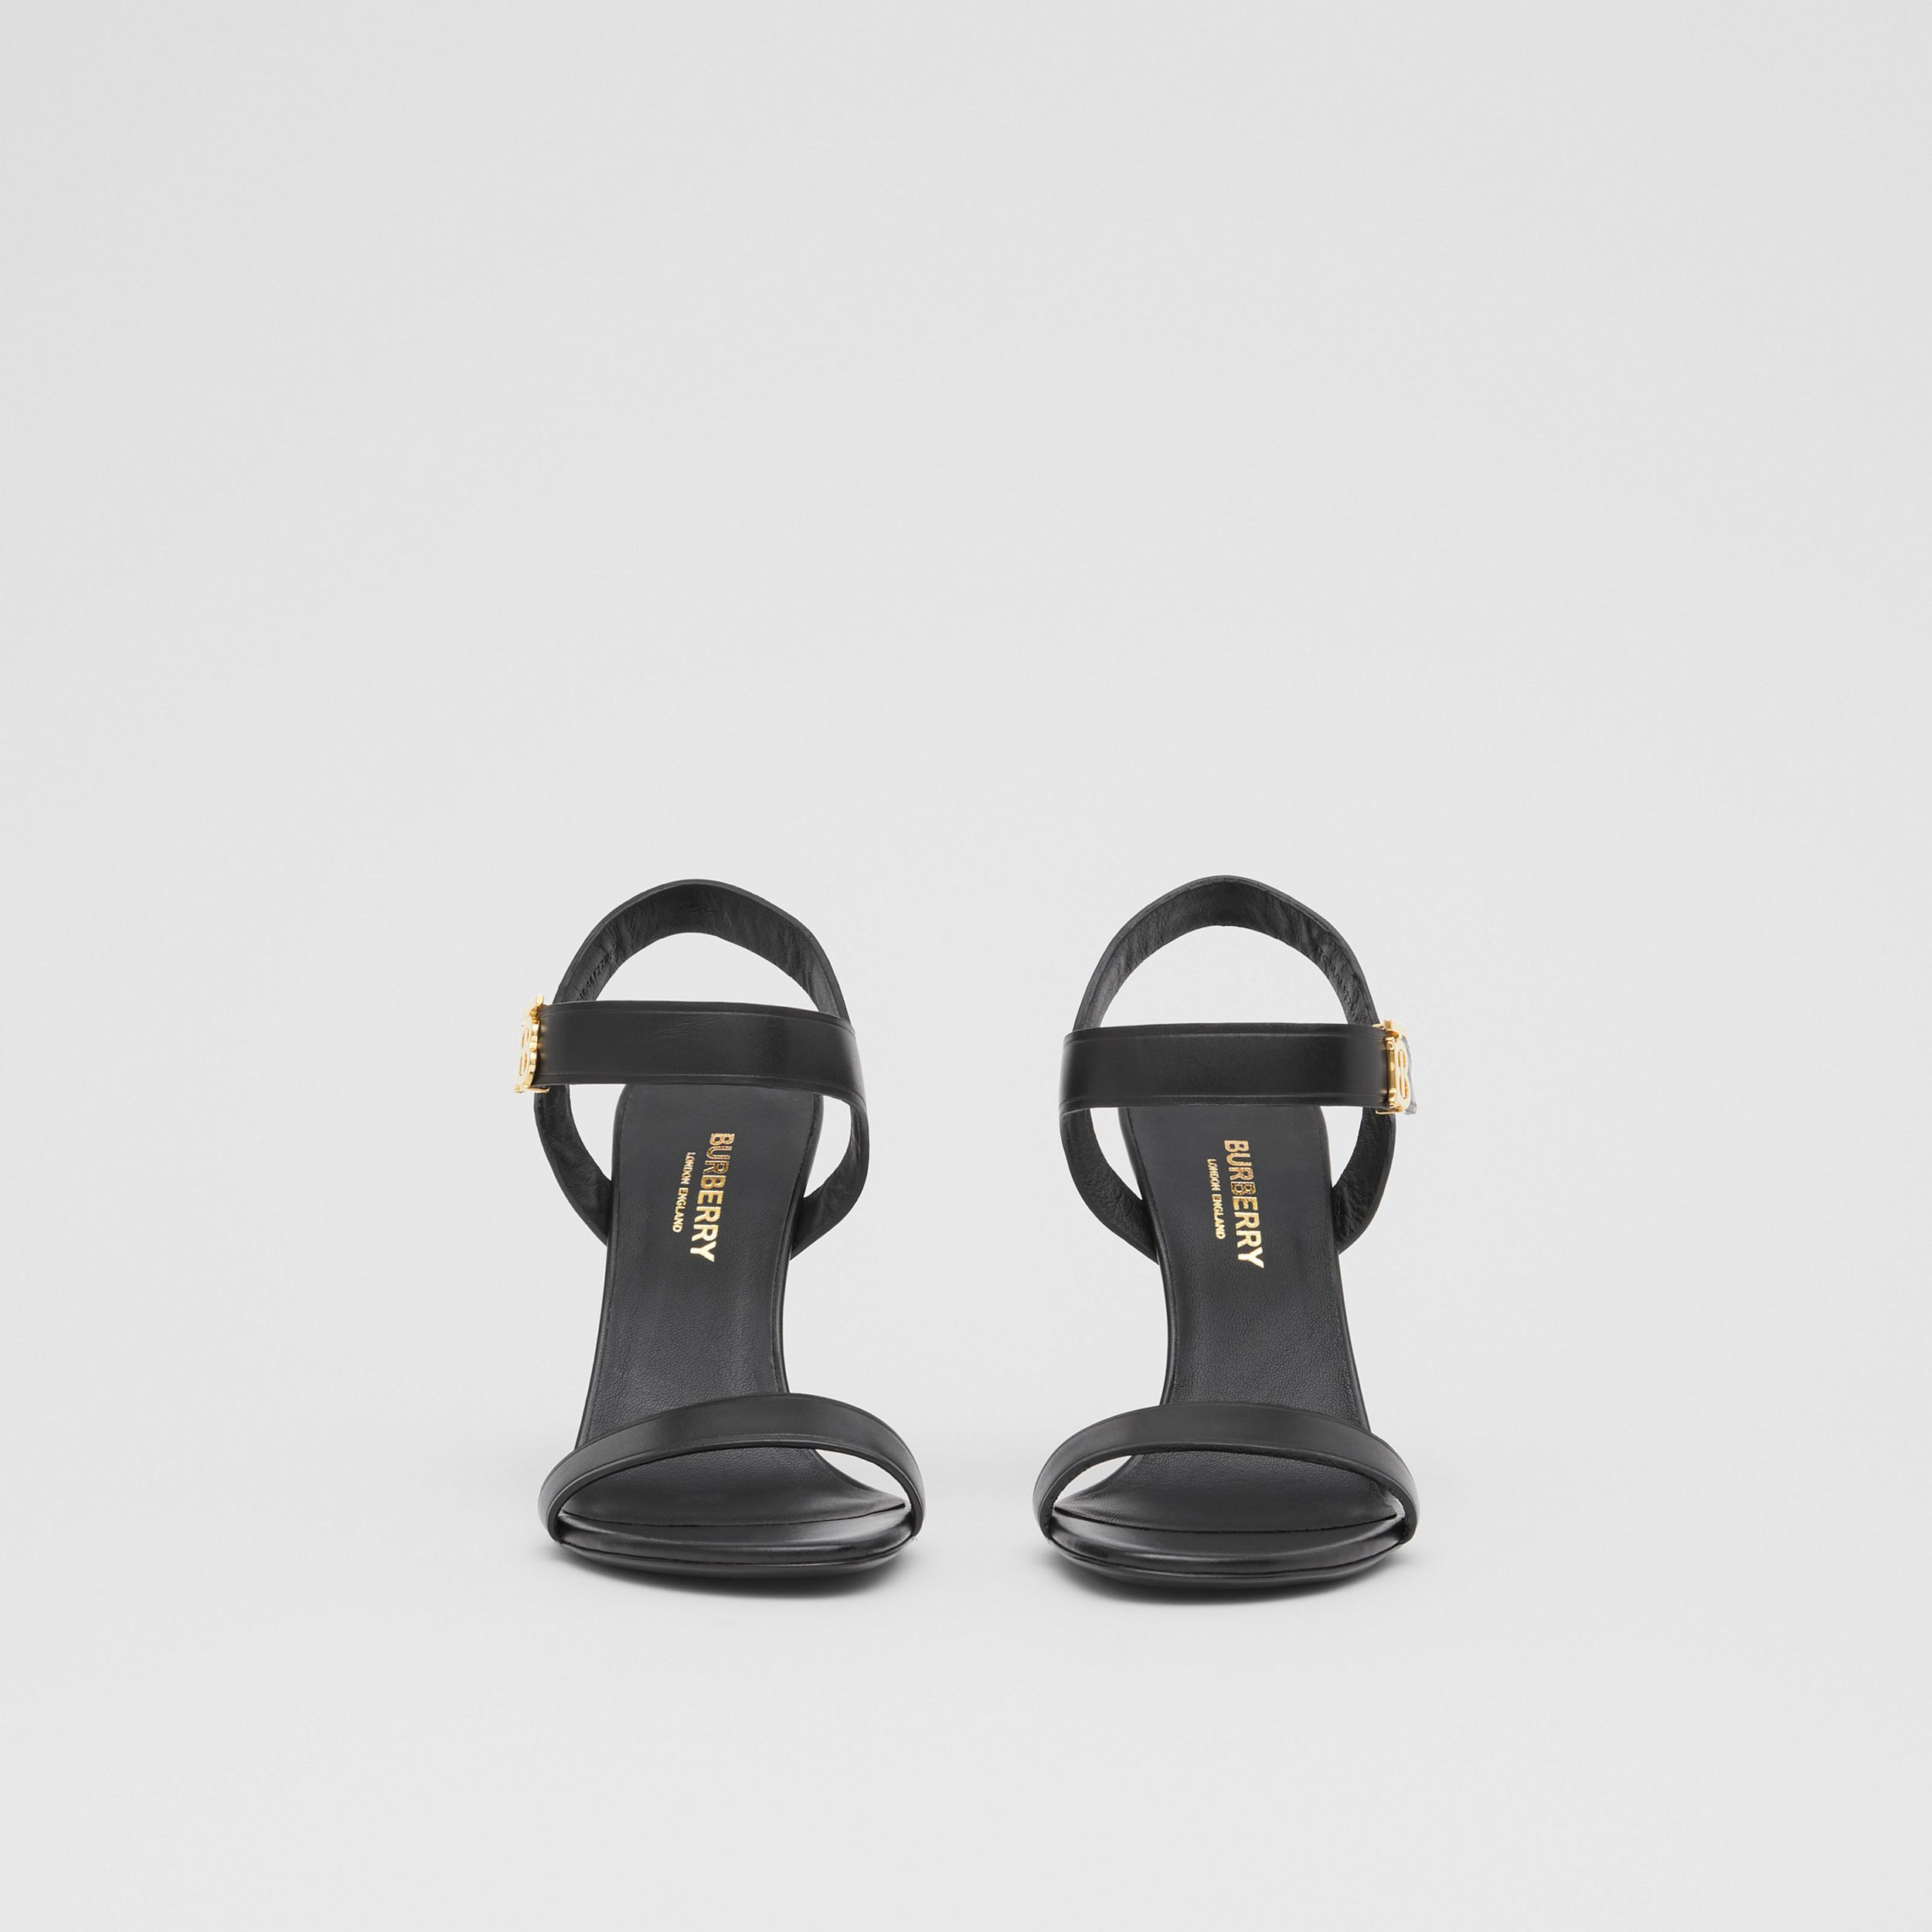 Monogram Motif Leather Sandals in Black - Women | Burberry - 4